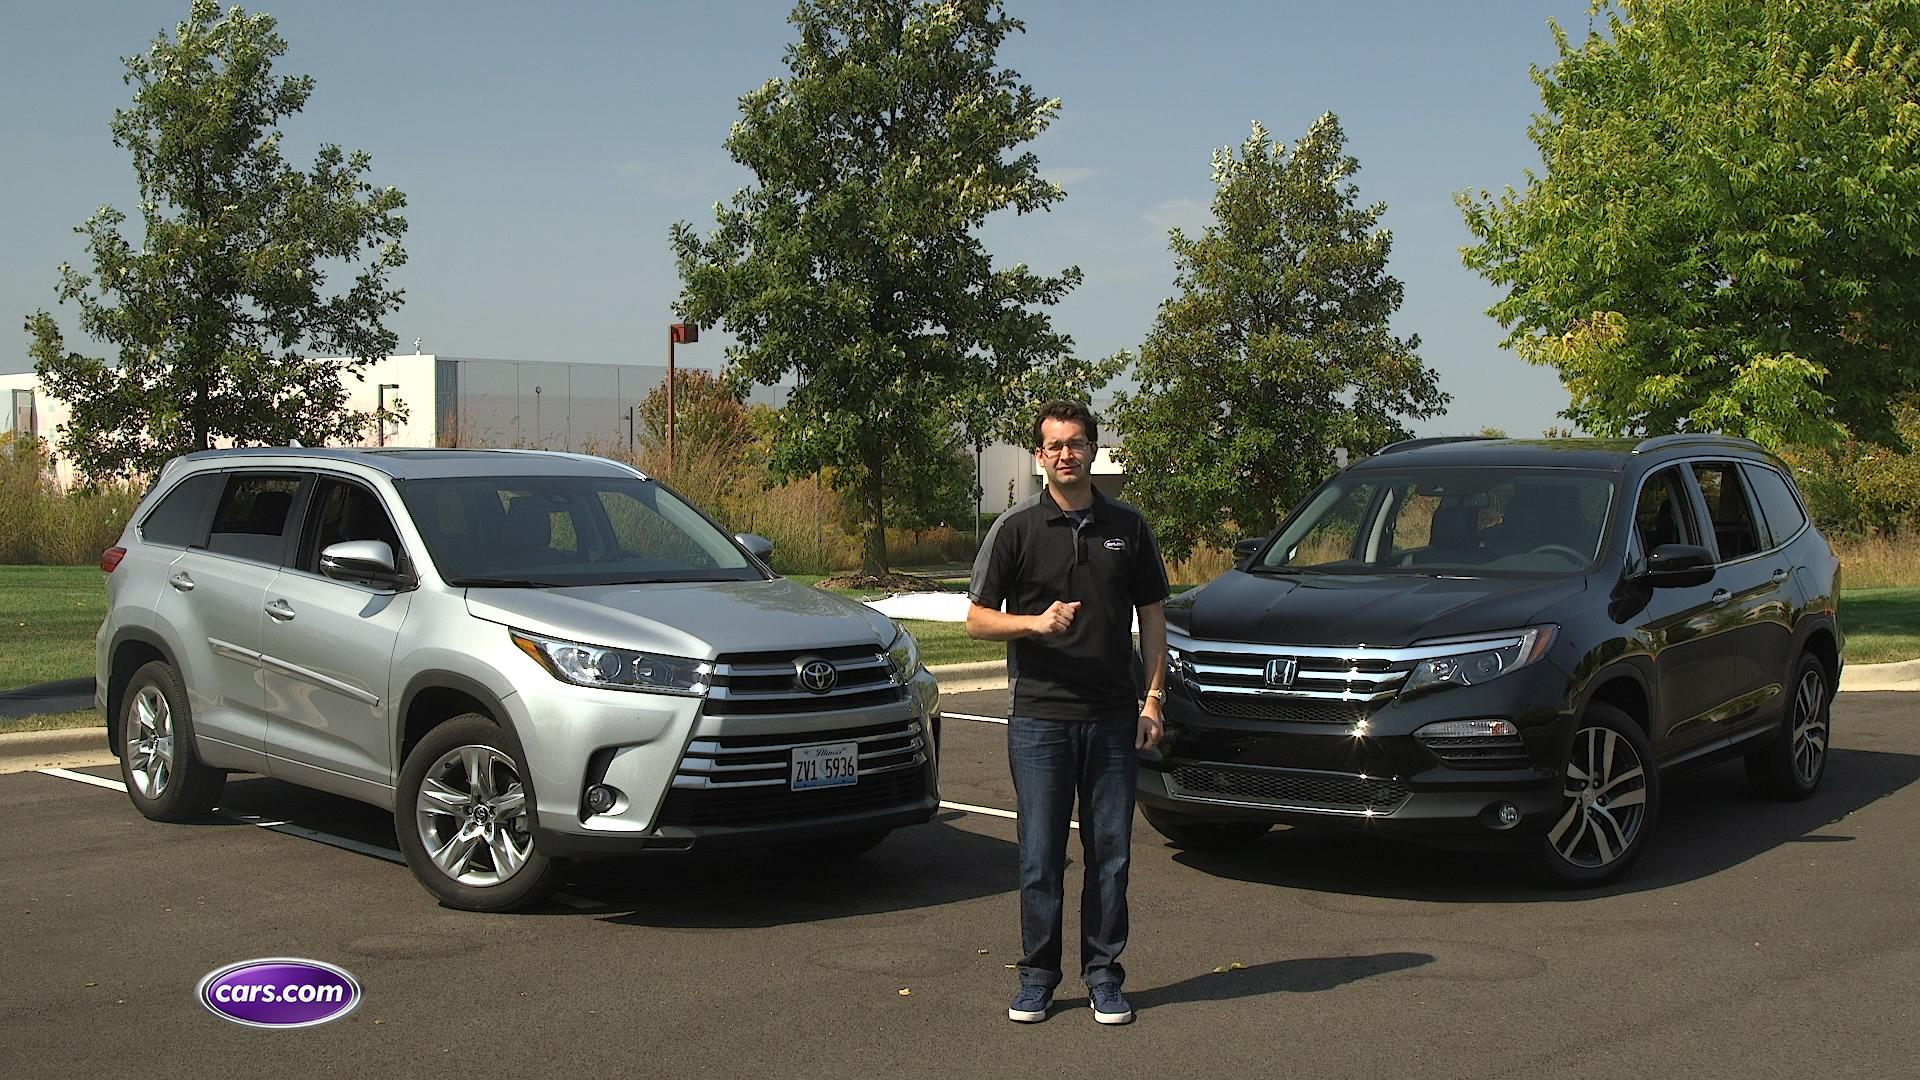 Highlander Vs. Pilot Video: Which 2017 3-Row SUV Should You Buy?